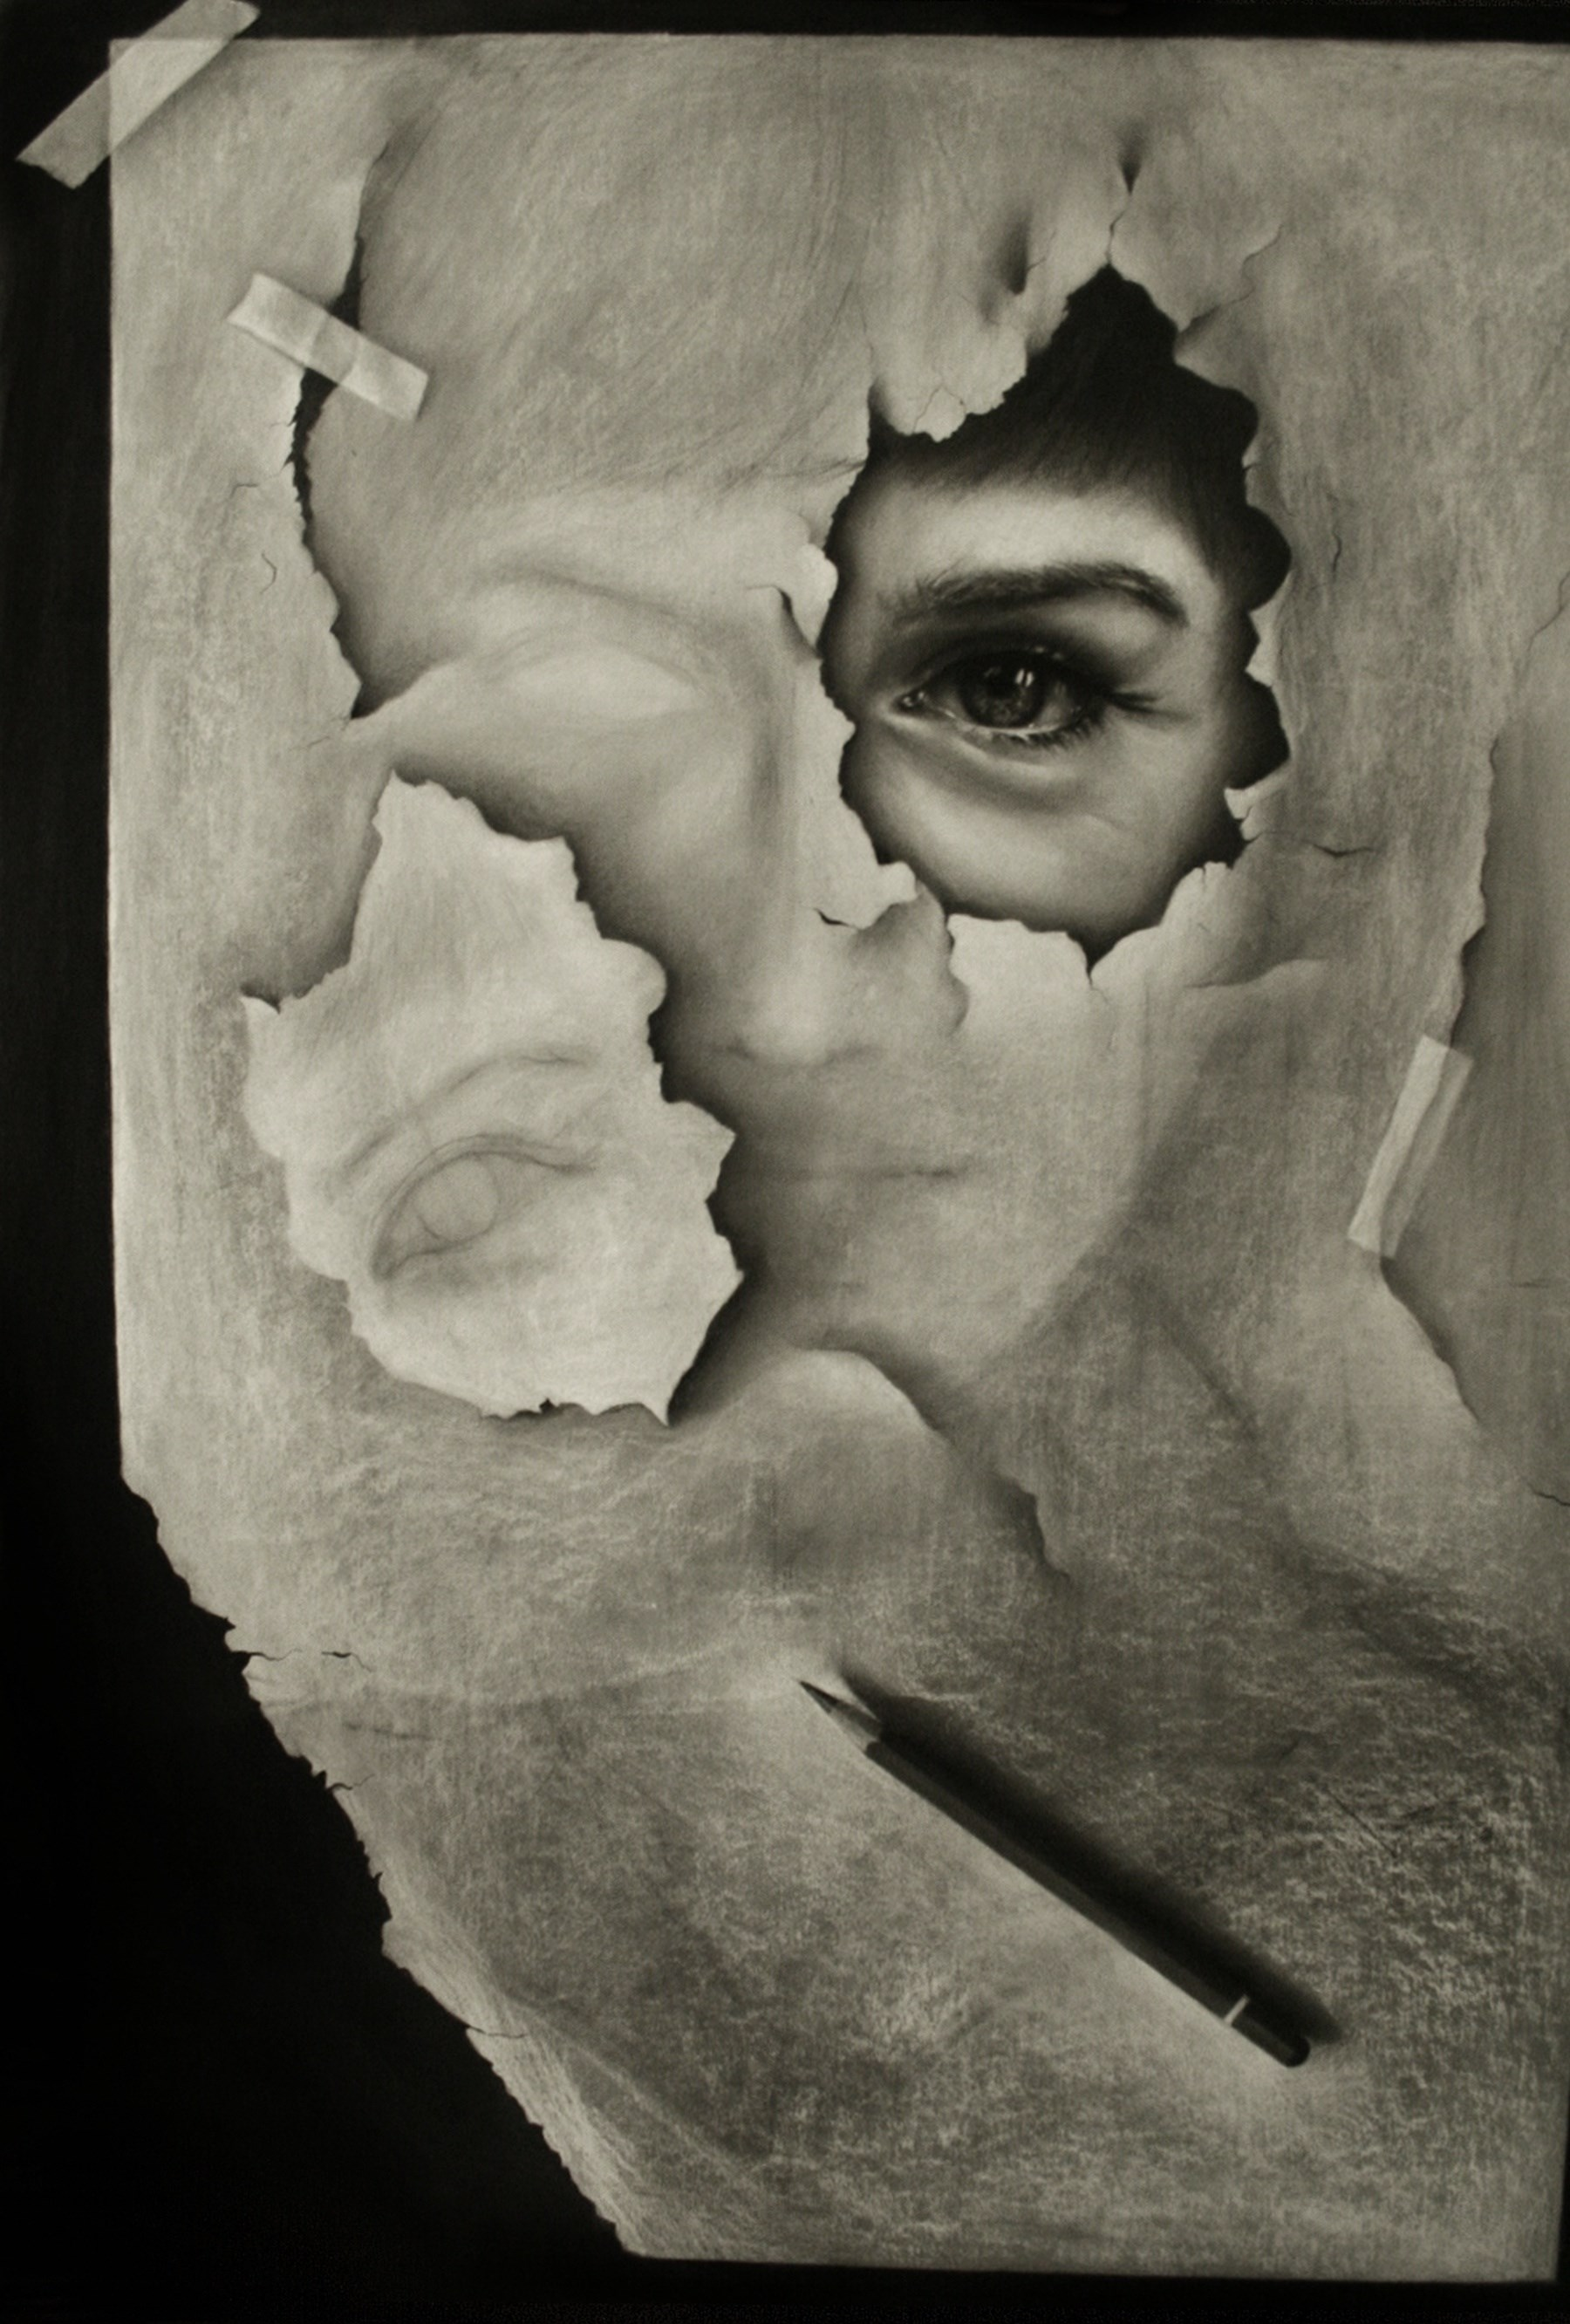 Surreal, original Portrait Charcoal Drawing and Illustration by Cris D.K.